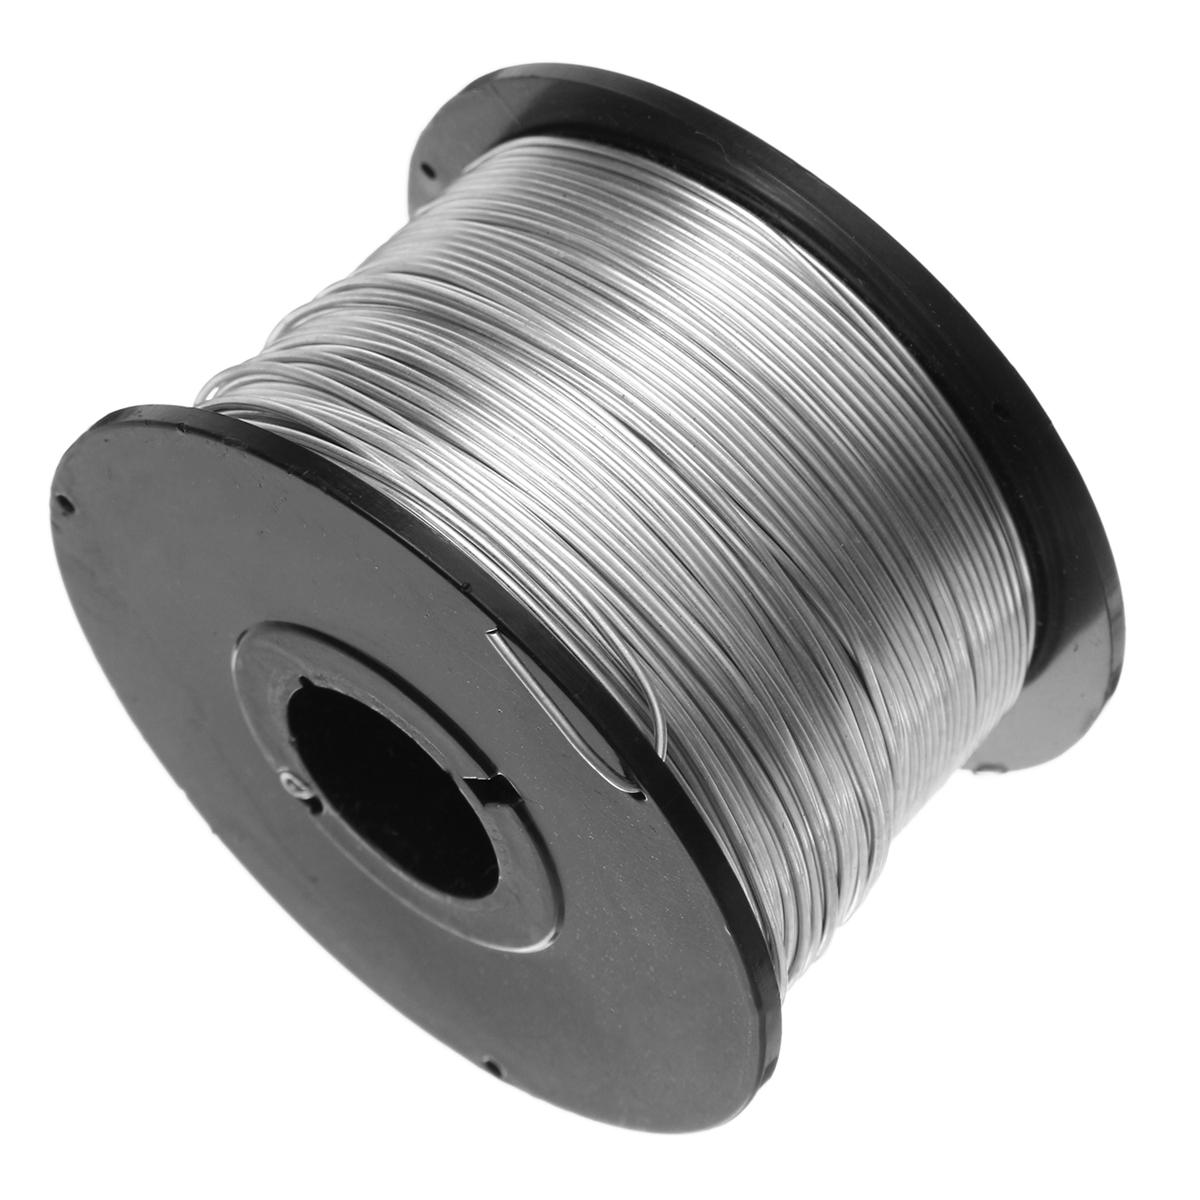 110M 0.8mm Rebar Tie Wire Coil For Automatic Rebar Tying Machine ...